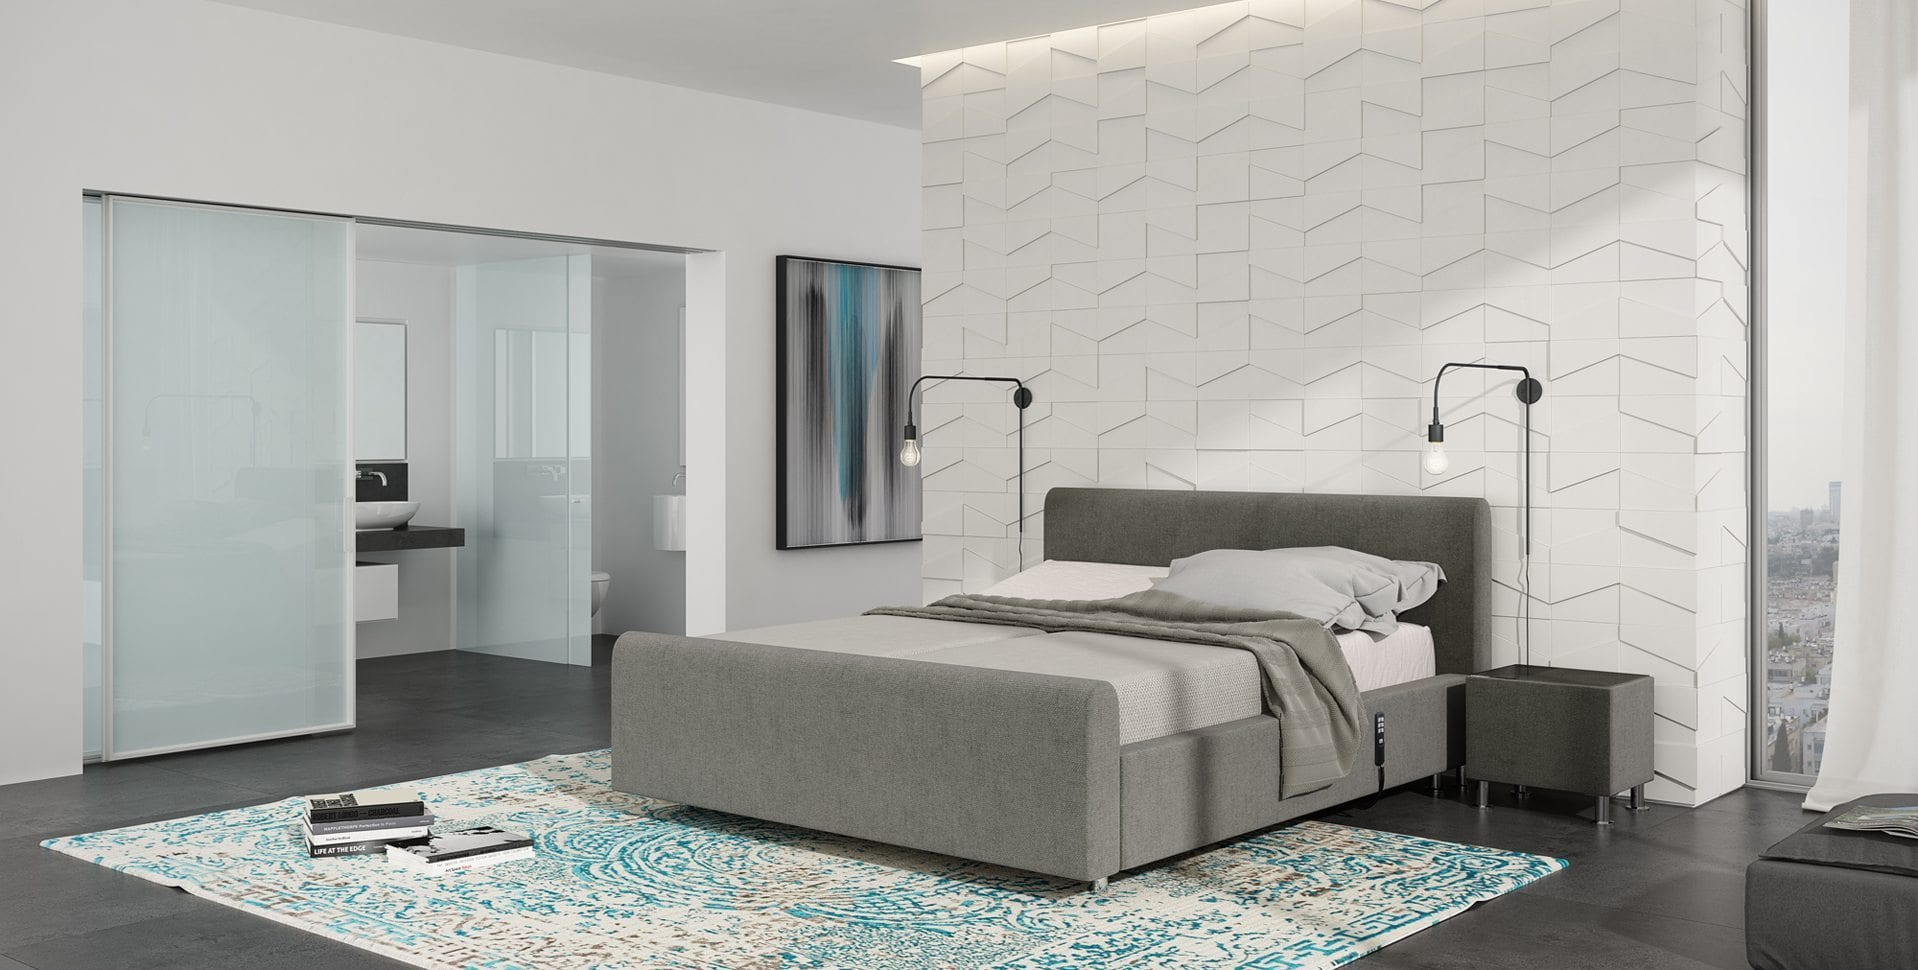 Maayan-Golan_Architectural-Visualization_product-visualization_ Adjustable-bed_american-system_01